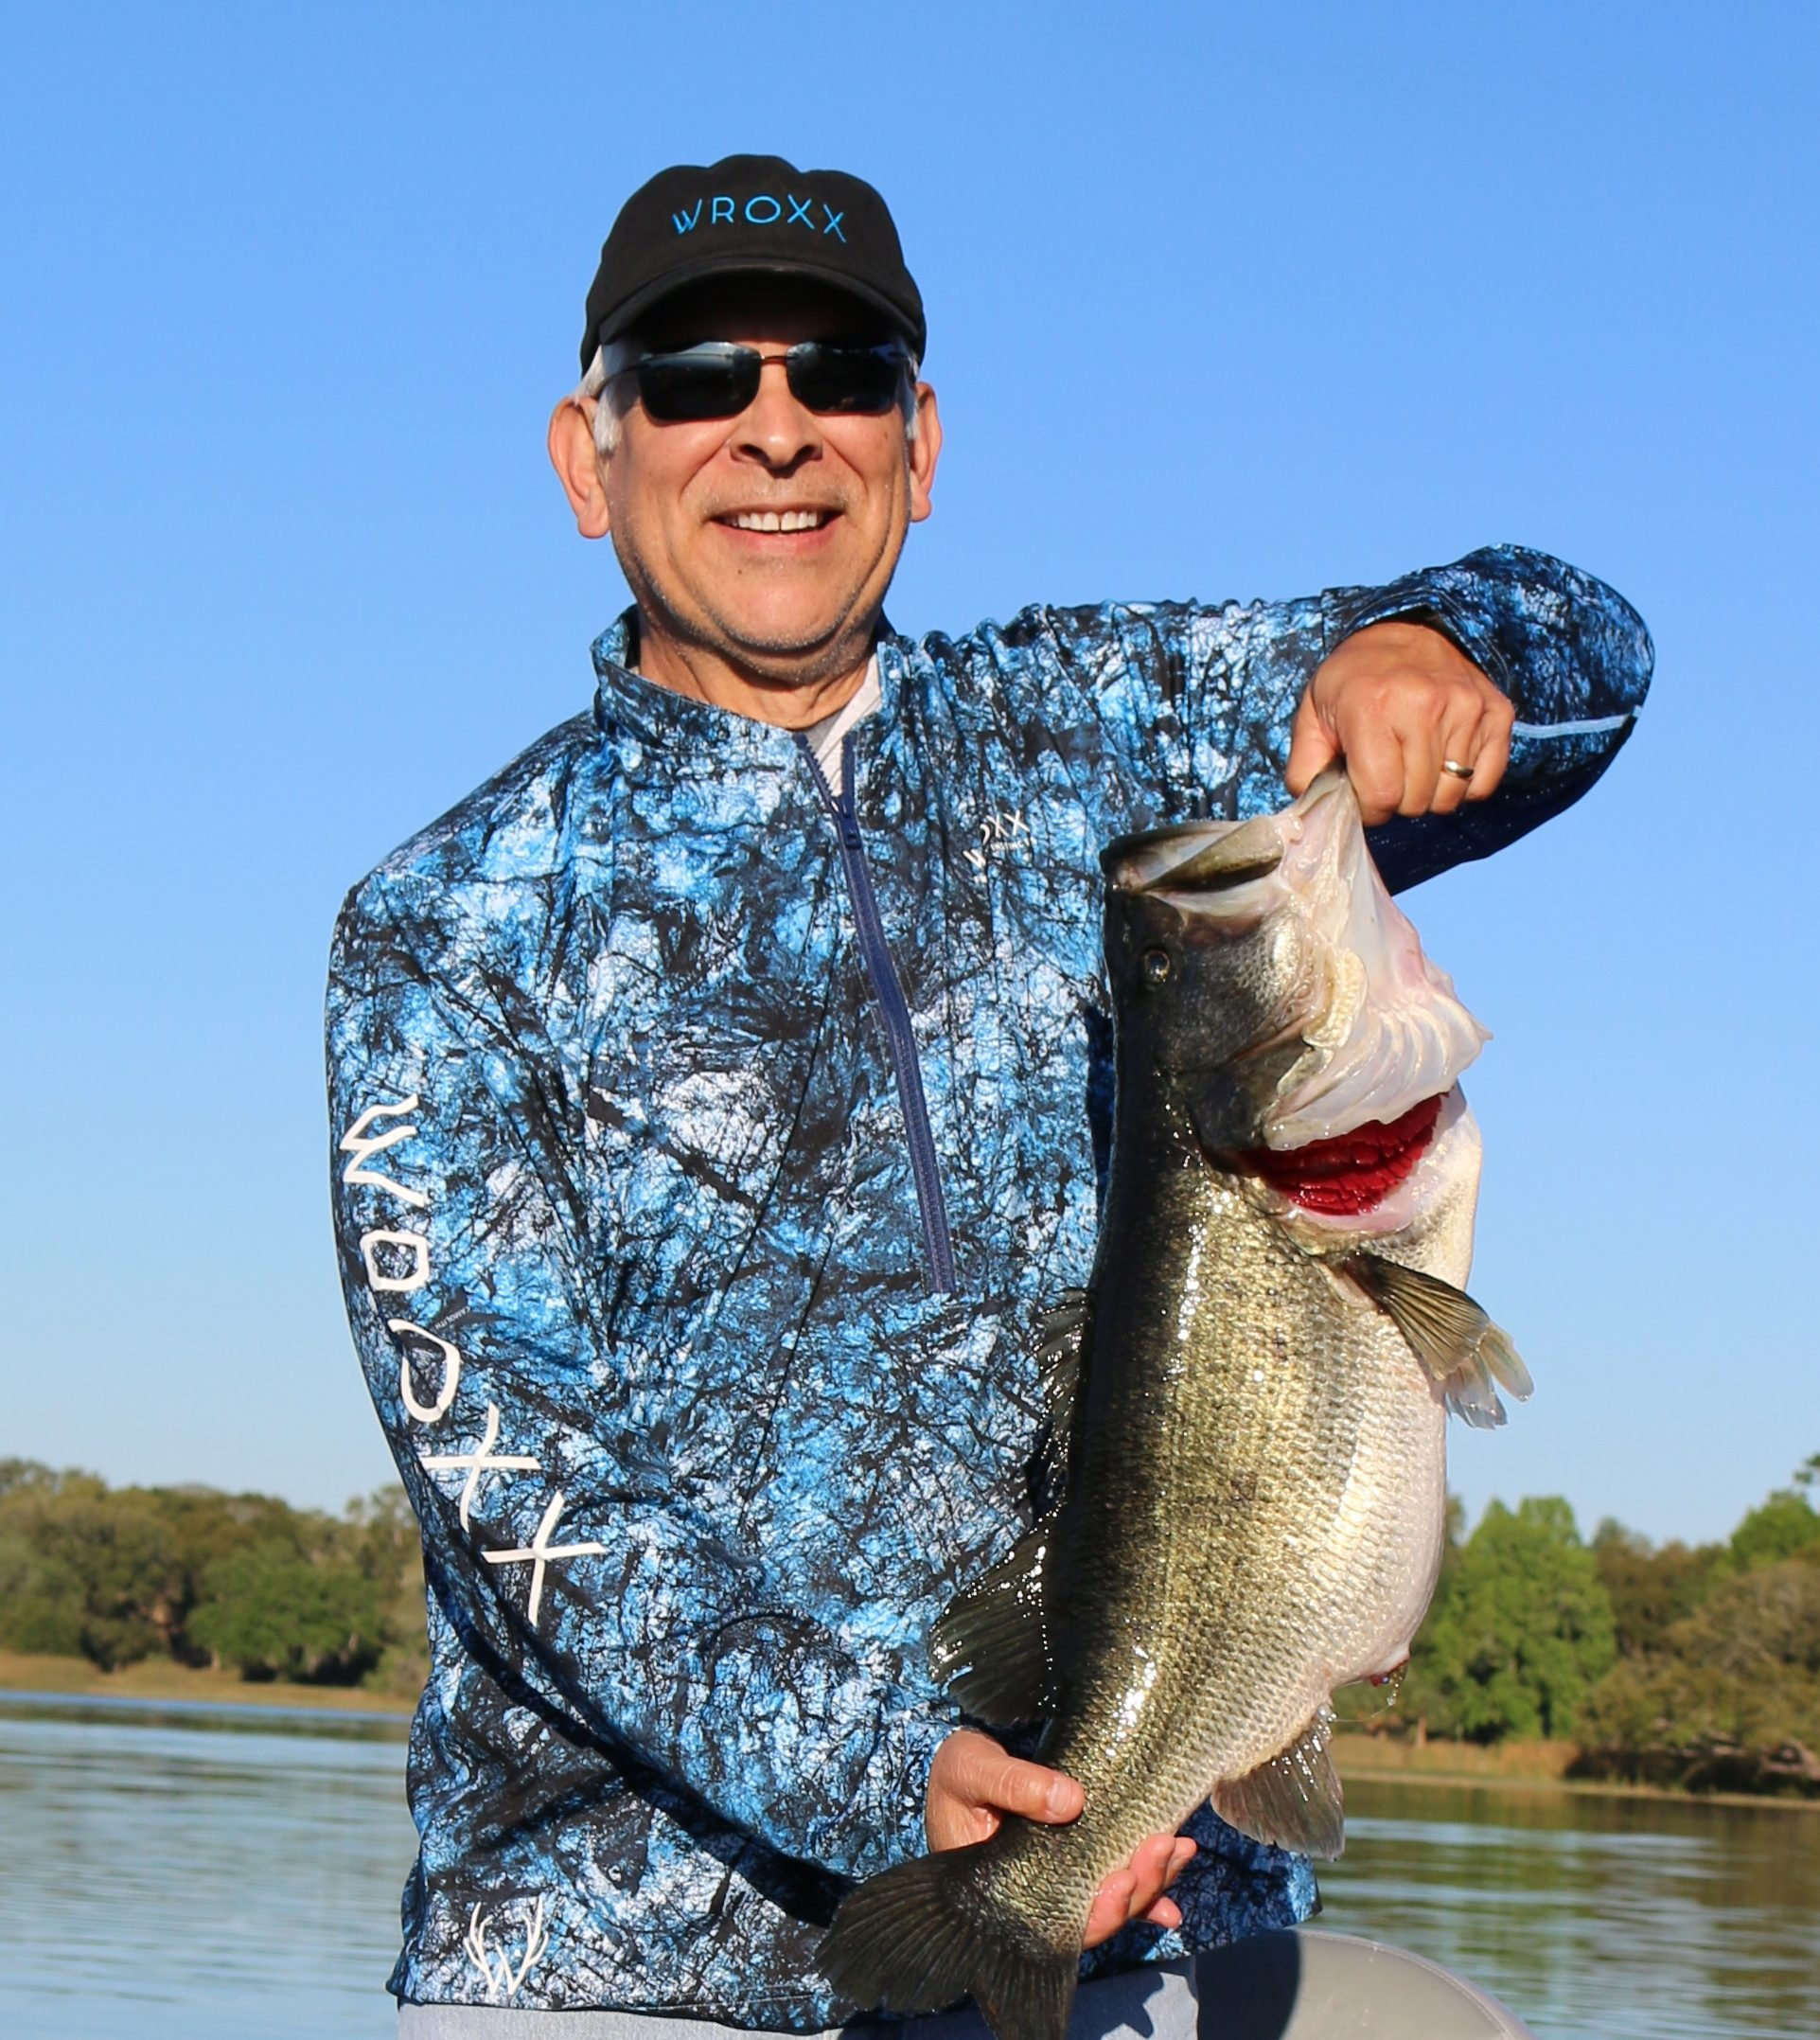 largemouth bass that makes it the best of times